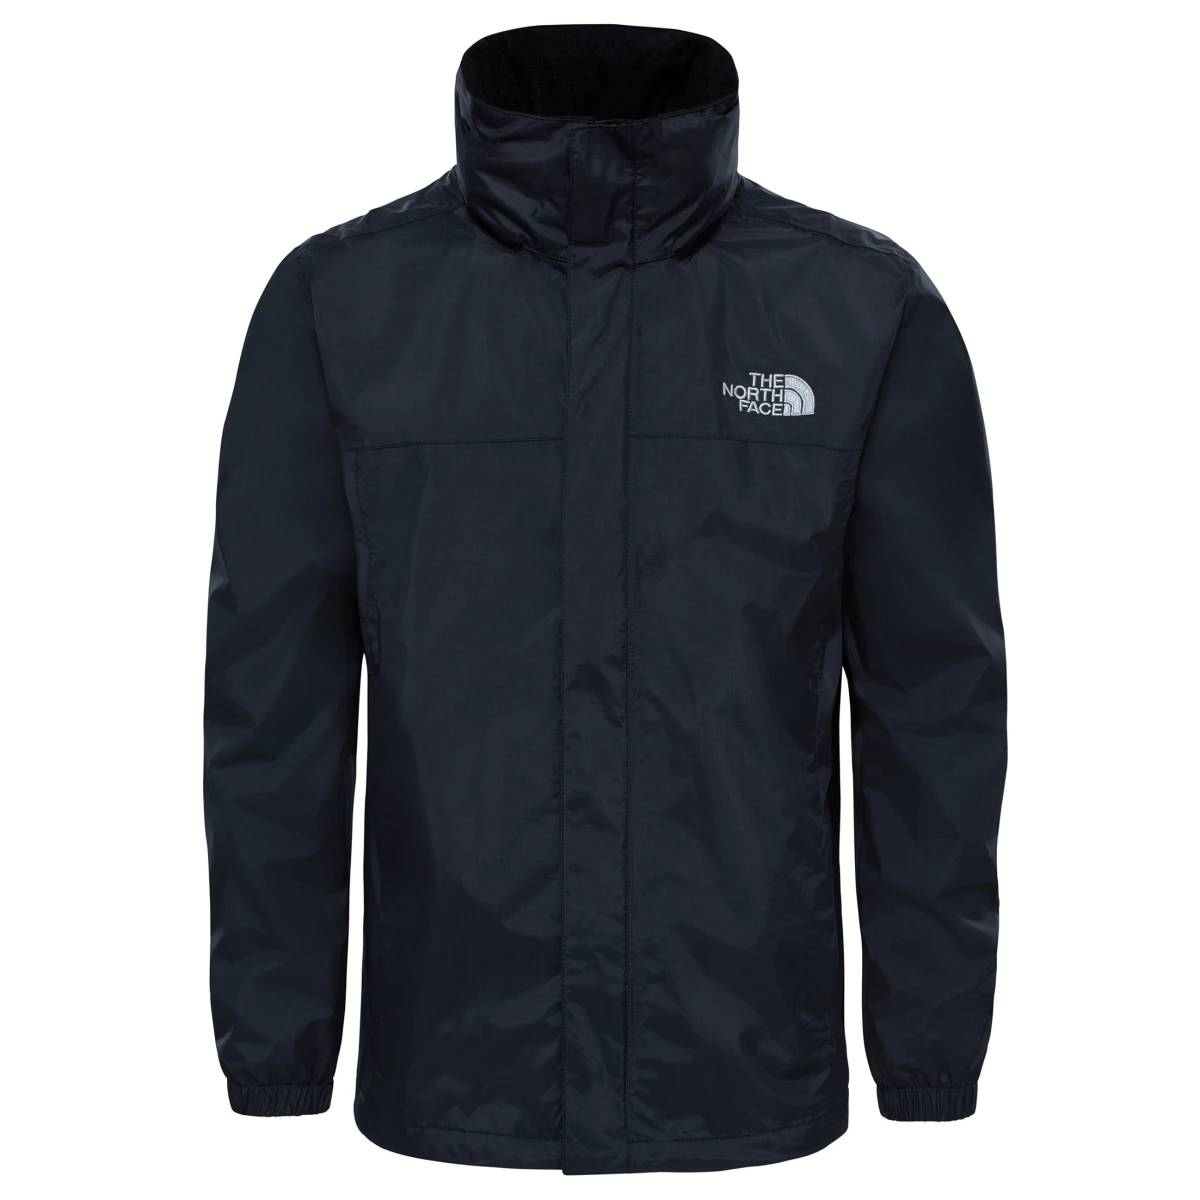 The North Face Resolve 2 Jacket - M